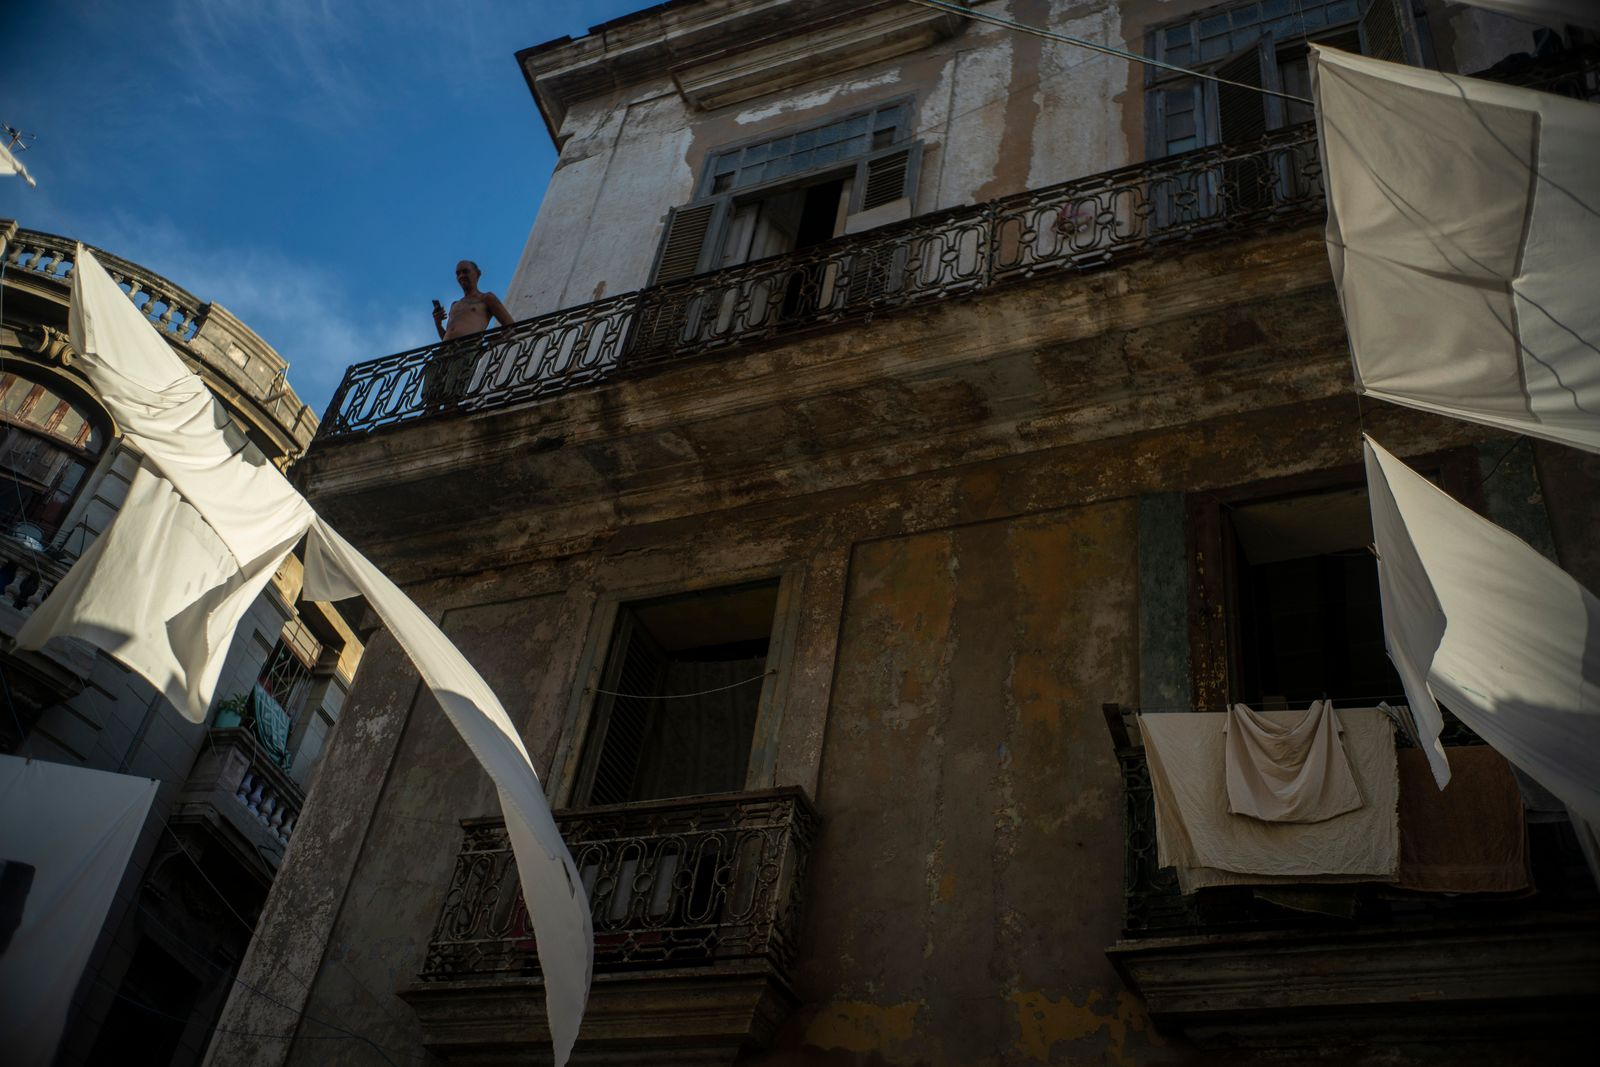 In this Nov. 9, 2019 photo, a man stands on the balcony of his home amid drying sheets in Havana, Cuba. The city of Havana will celebrate its 500th anniversary on Nov. 16. (AP Photo/Ramon Espinosa)